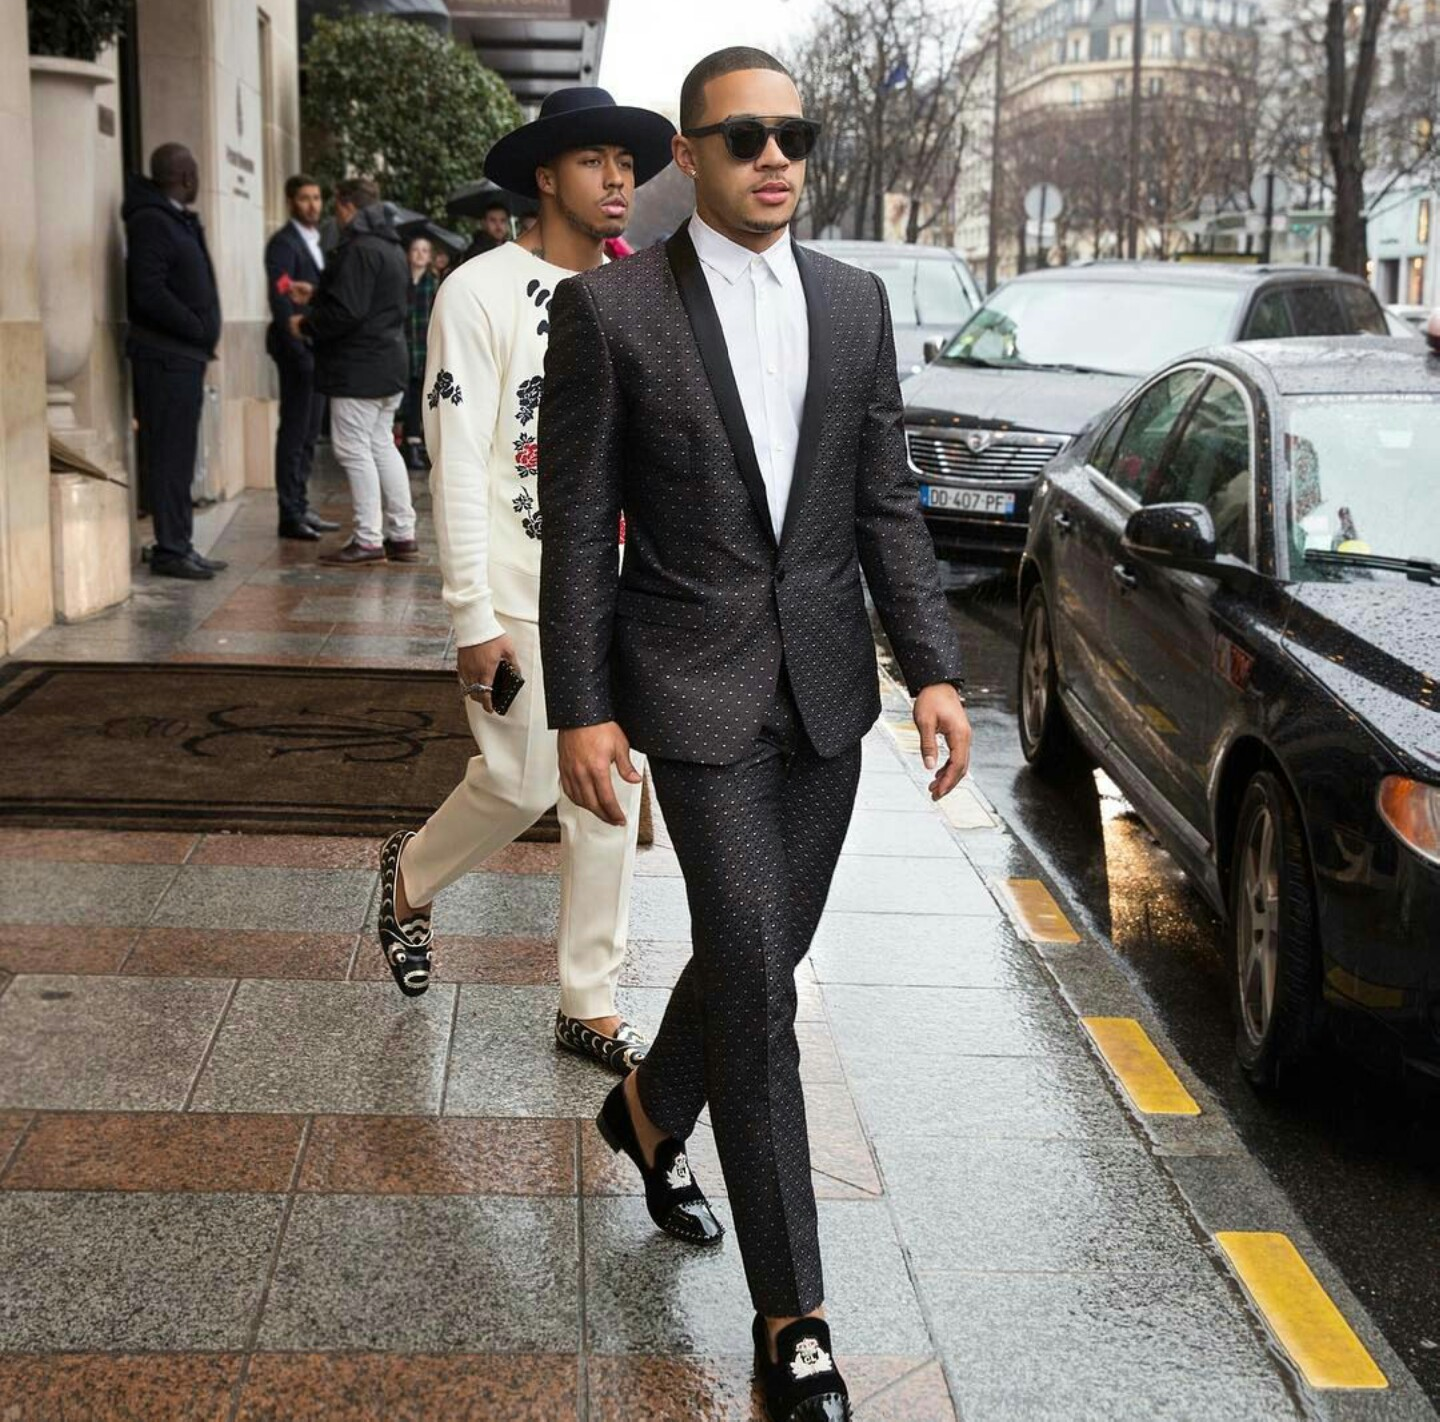 Memphis Depay's Paris Fashion Week Dolce & Gabbana Suit